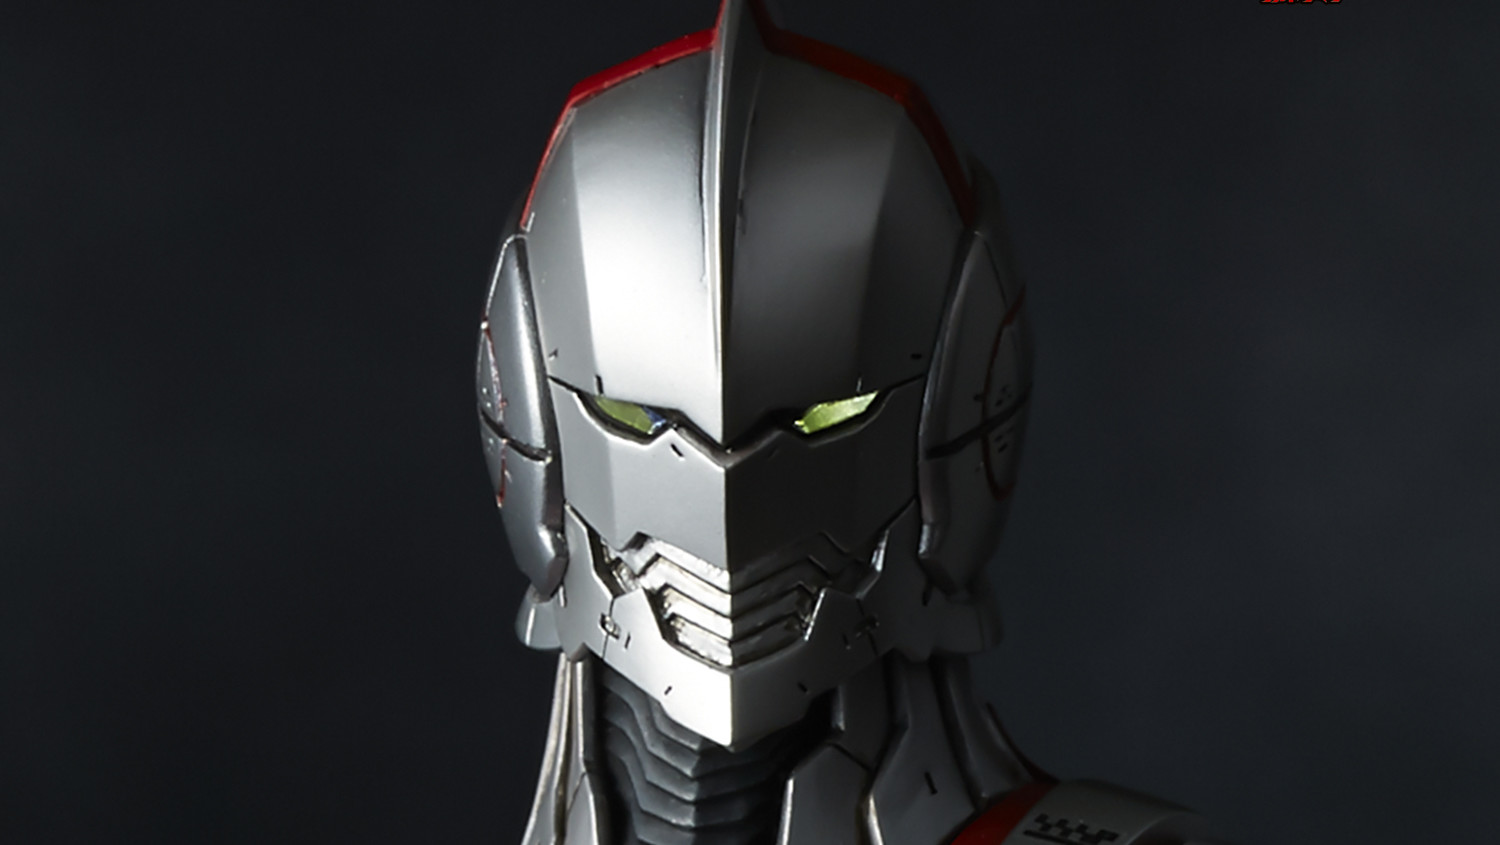 ULTRAMAN 1/6 Scale Statue Coming Soon from Gecco